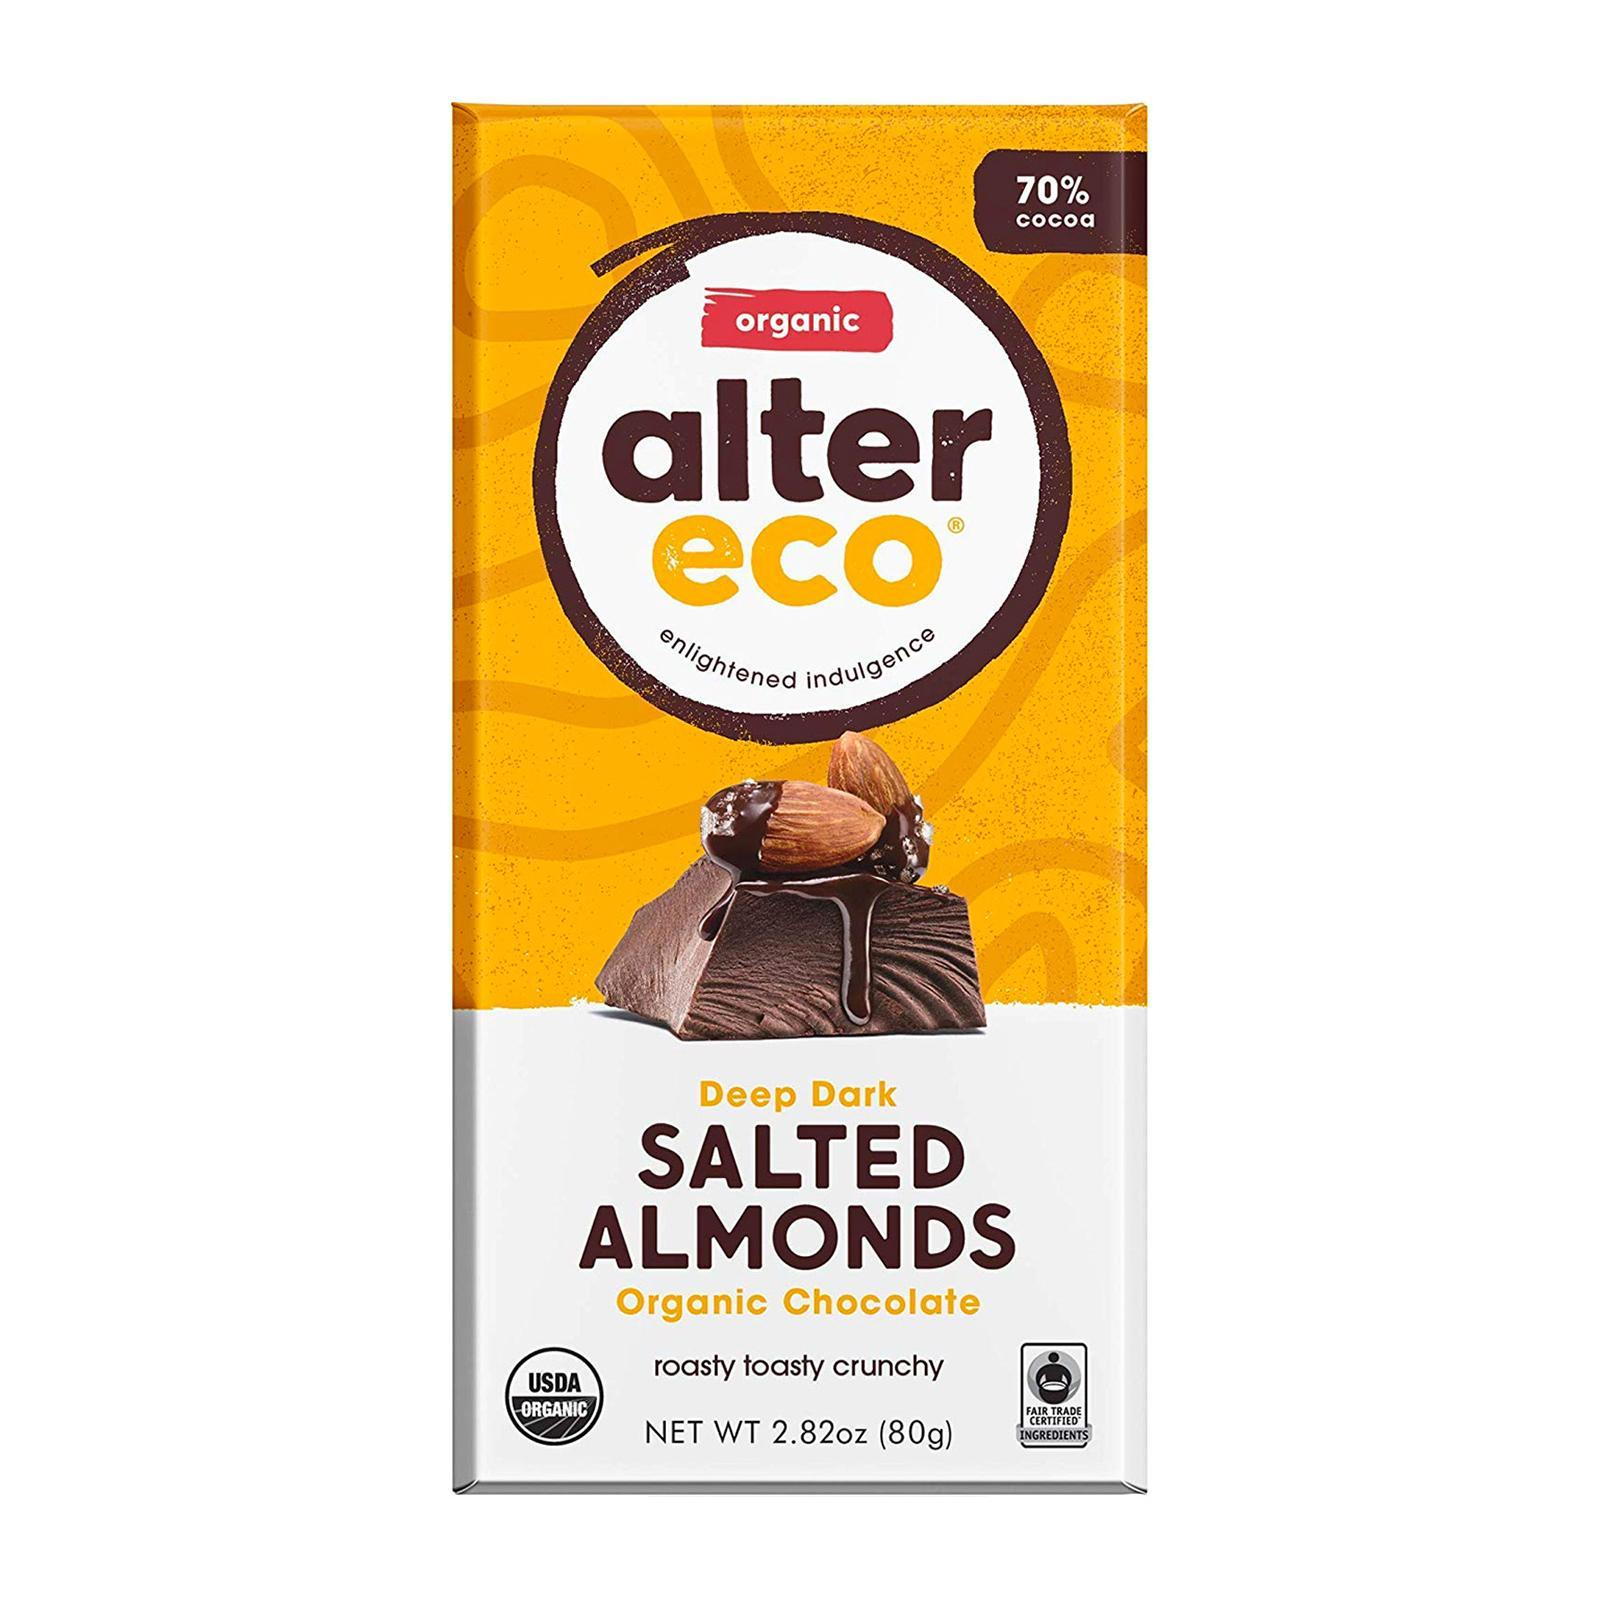 Alter Eco Organic Dark Salted Almonds Chocolate - By Wholesome Harvest